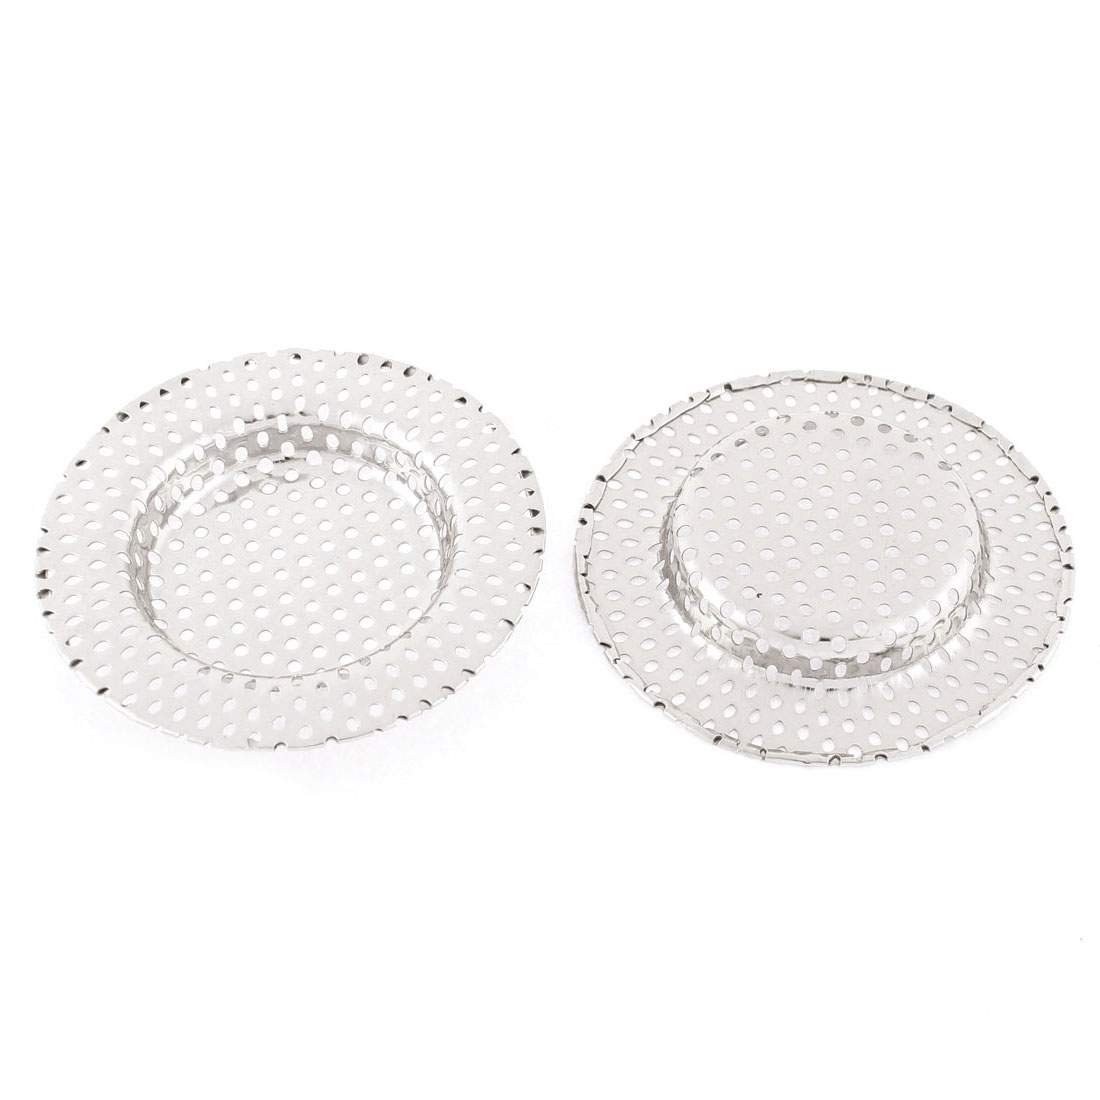 Kitchen Bathroom Stainless Steel Mesh Sink Basin Strainer 2pcs